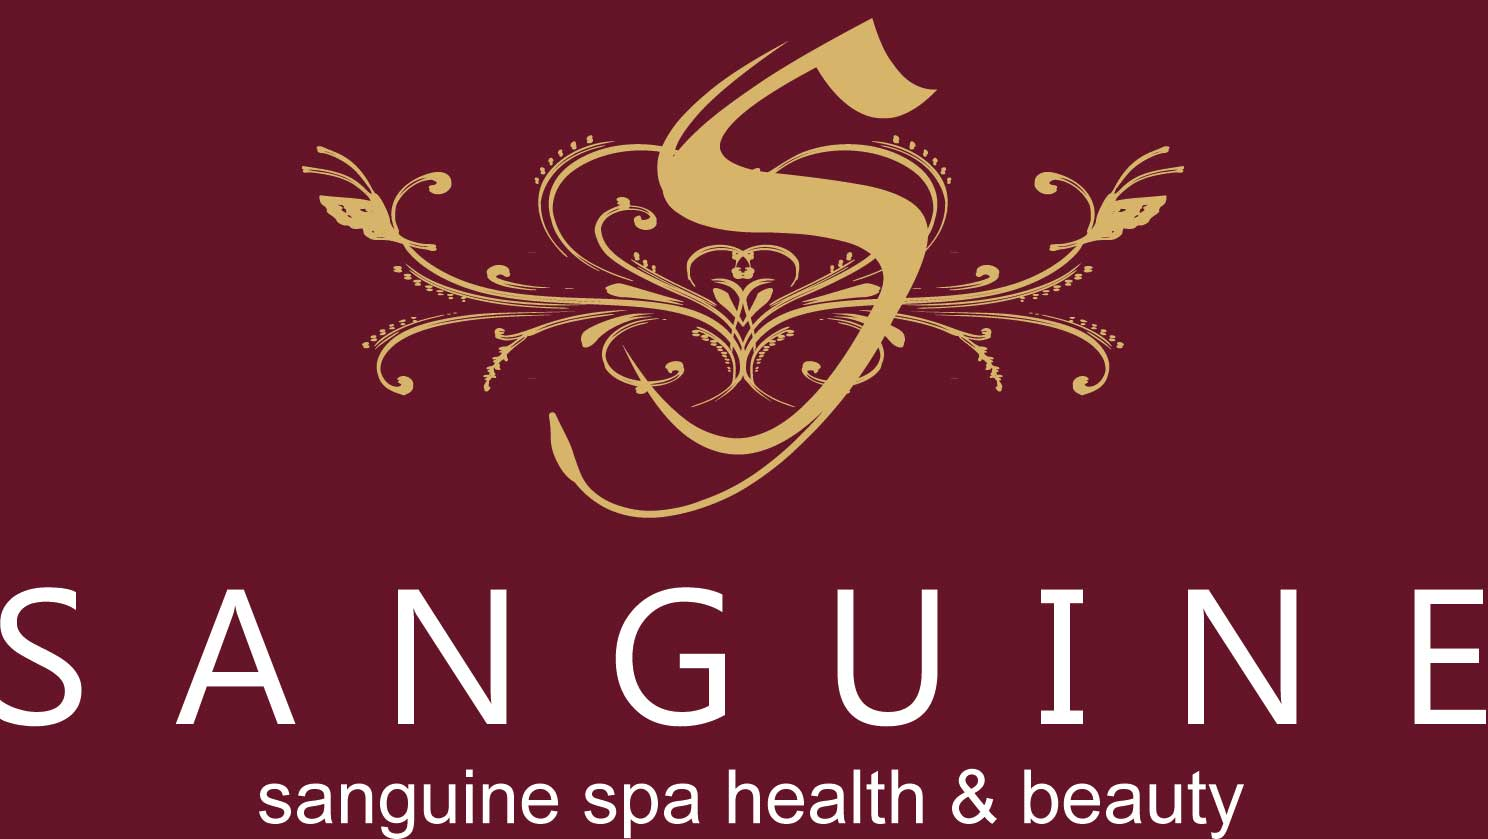 Sanguine spa health & beauty logo big